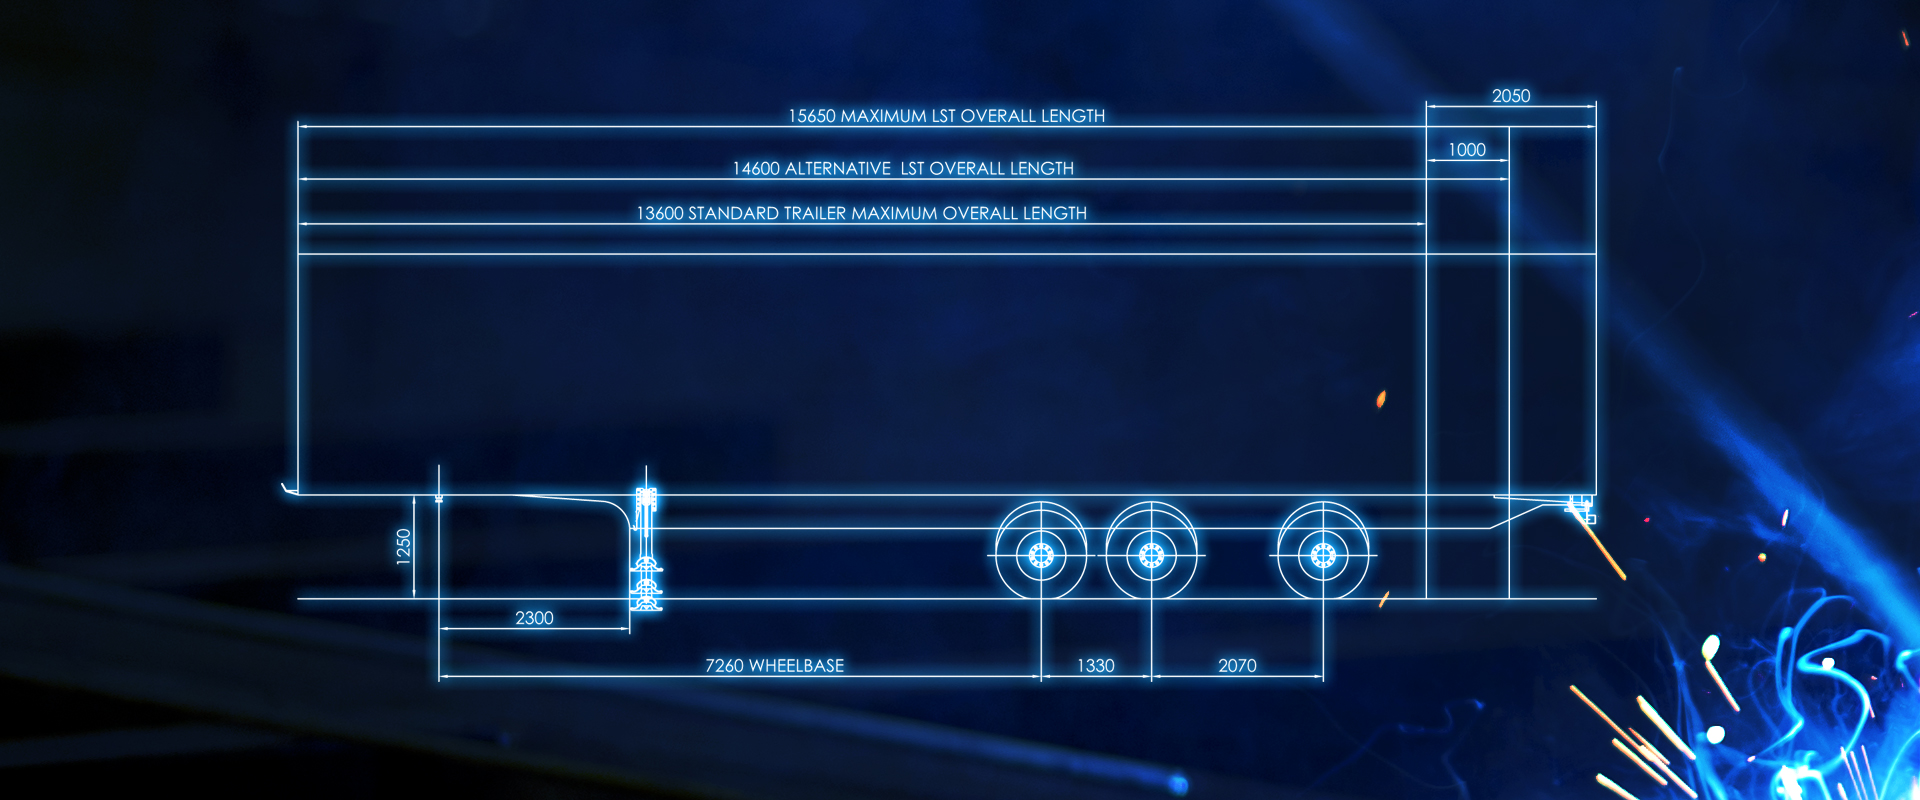 longer semi-trailer blueprint